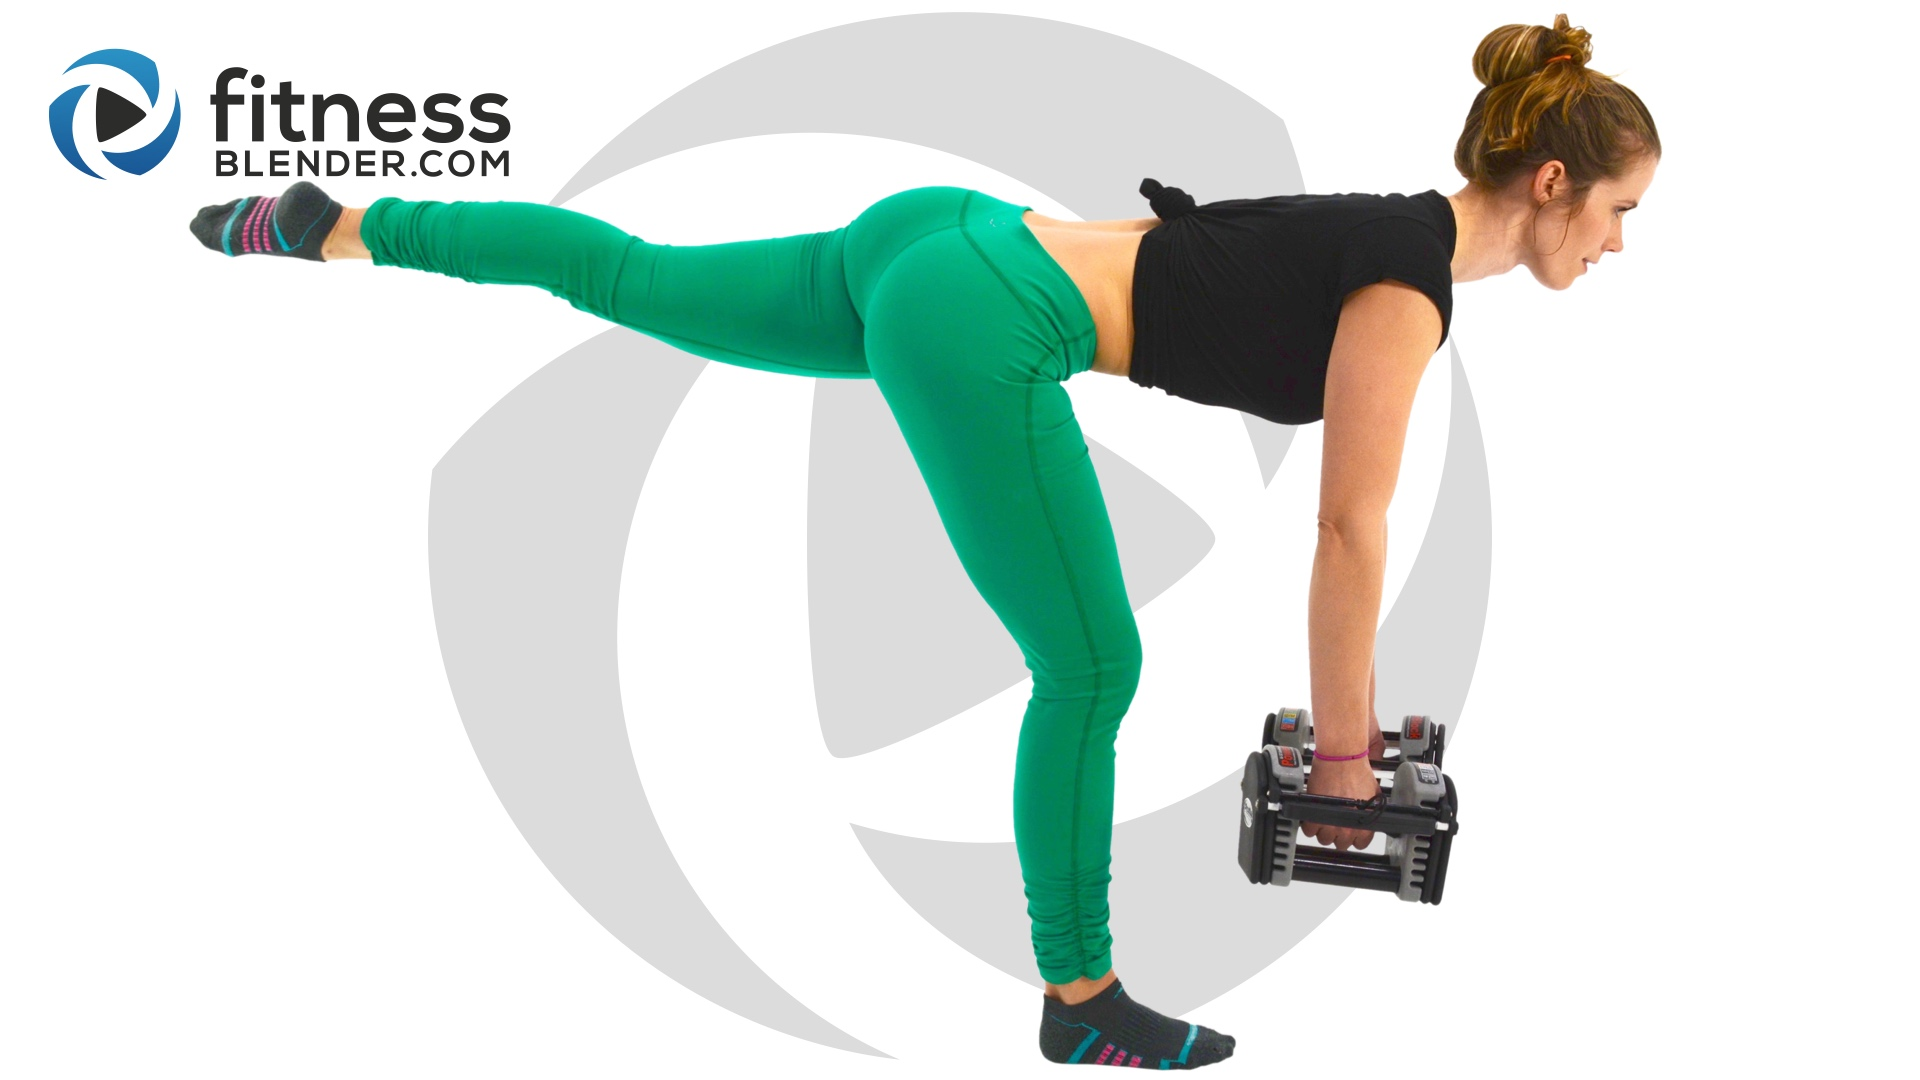 At Home And Thigh Workout Booty Sculpting Lower Body Strength Training Fitness Blender